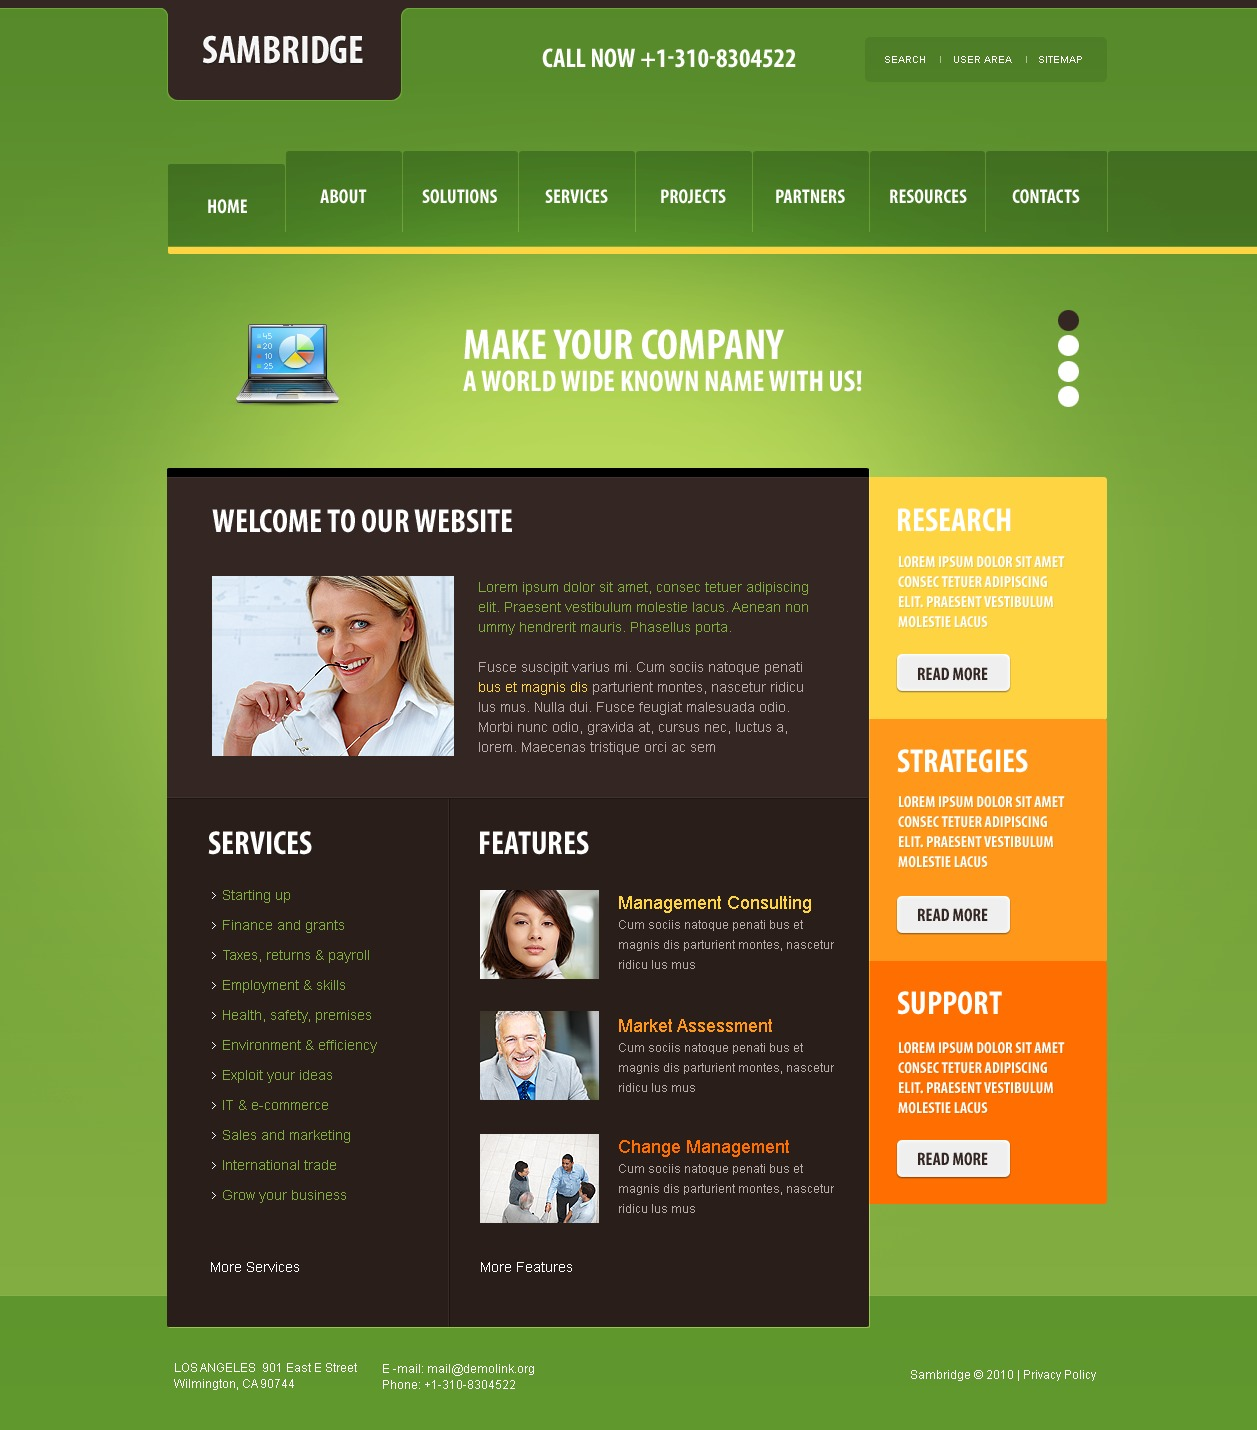 The Sambridge Business Company PSD Design 54326, one of the best PSD templates of its kind (business, wide, jquery), also known as sambridge business company PSD template, corporate solutions PSD template, innovations PSD template, contacts PSD template, service PSD template, support PSD template, information dealer PSD template, stocks PSD template, team PSD template, success PSD template, money PSD template, marketing PSD template, director PSD template, manager PSD template, analytics PSD template, planning PSD template, limited PSD template, office PSD template, sales and related with sambridge business company, corporate solutions, innovations, contacts, service, support, information dealer, stocks, team, success, money, marketing, director, manager, analytics, planning, limited, office, sales, etc.